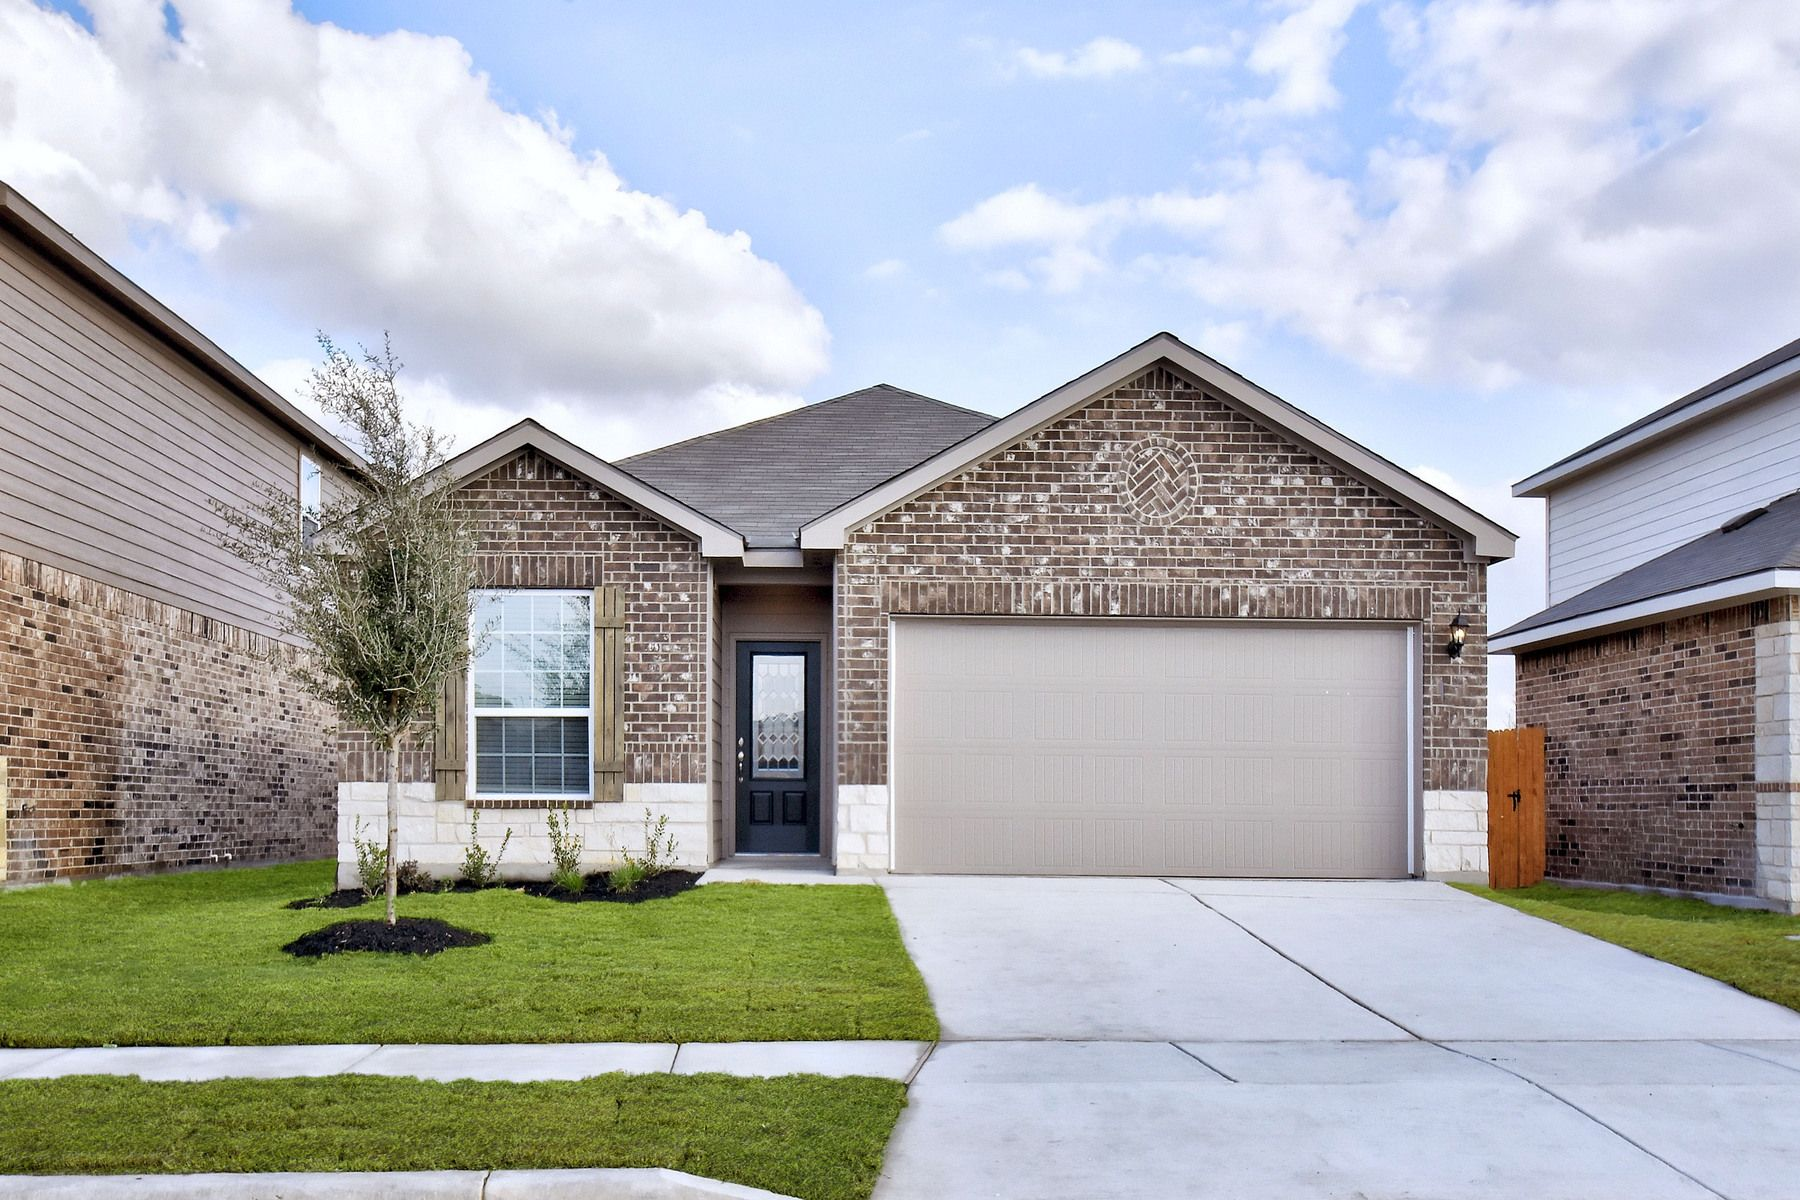 The Fannin by LGI Homes:The Fannin plan is available now at Hightop Ridge!